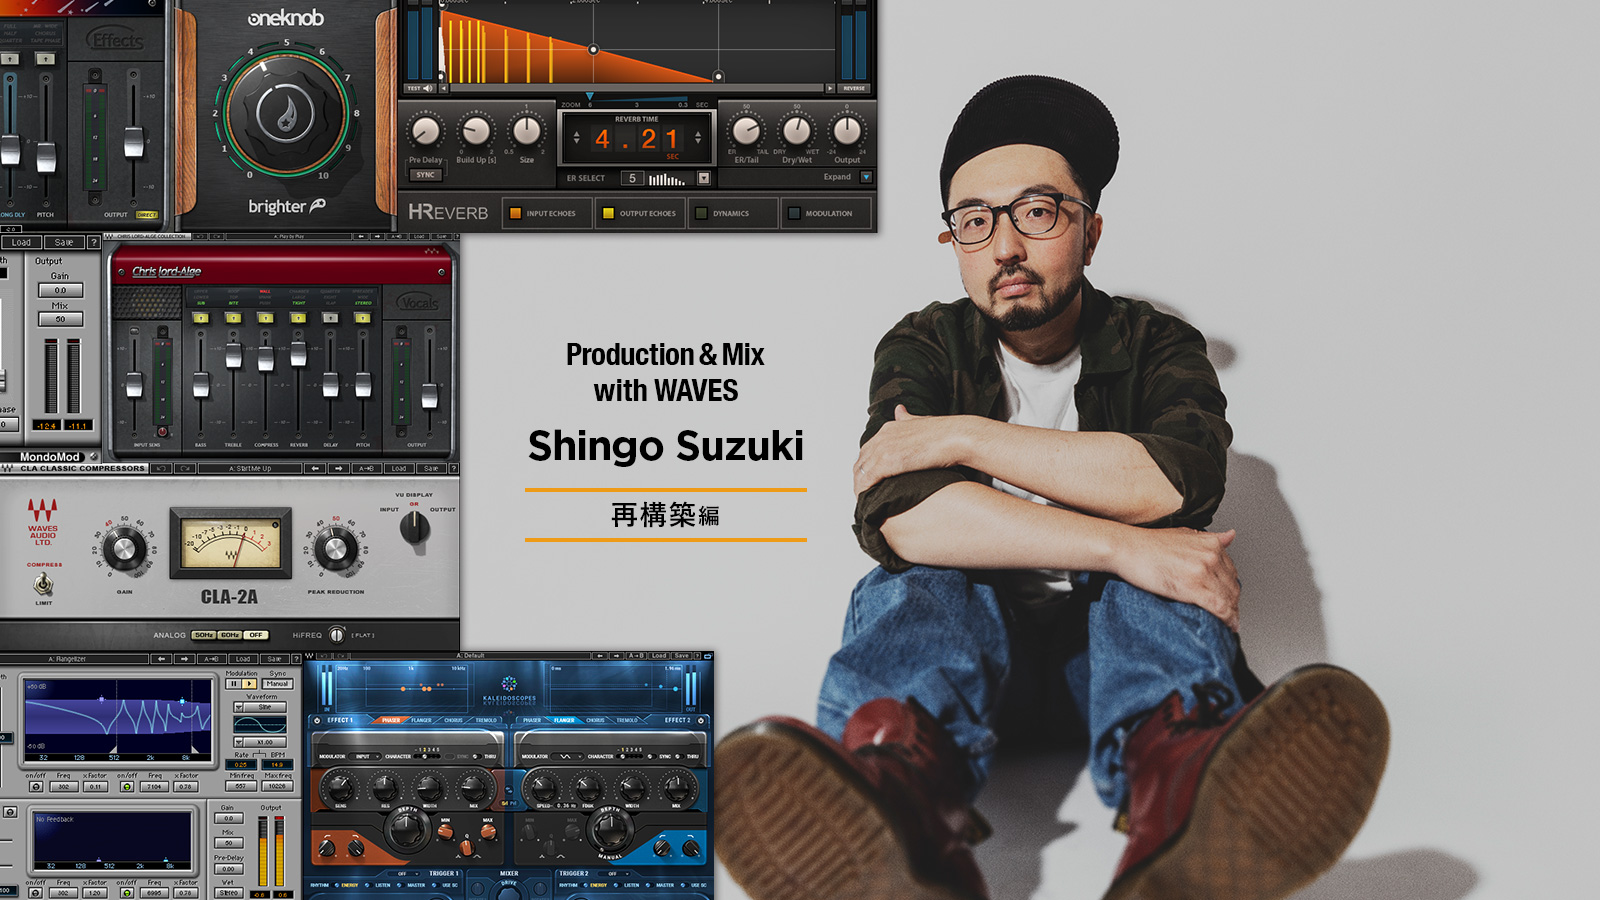 Production & Mix with WAVES – Shingo Suzuki – 再構築編